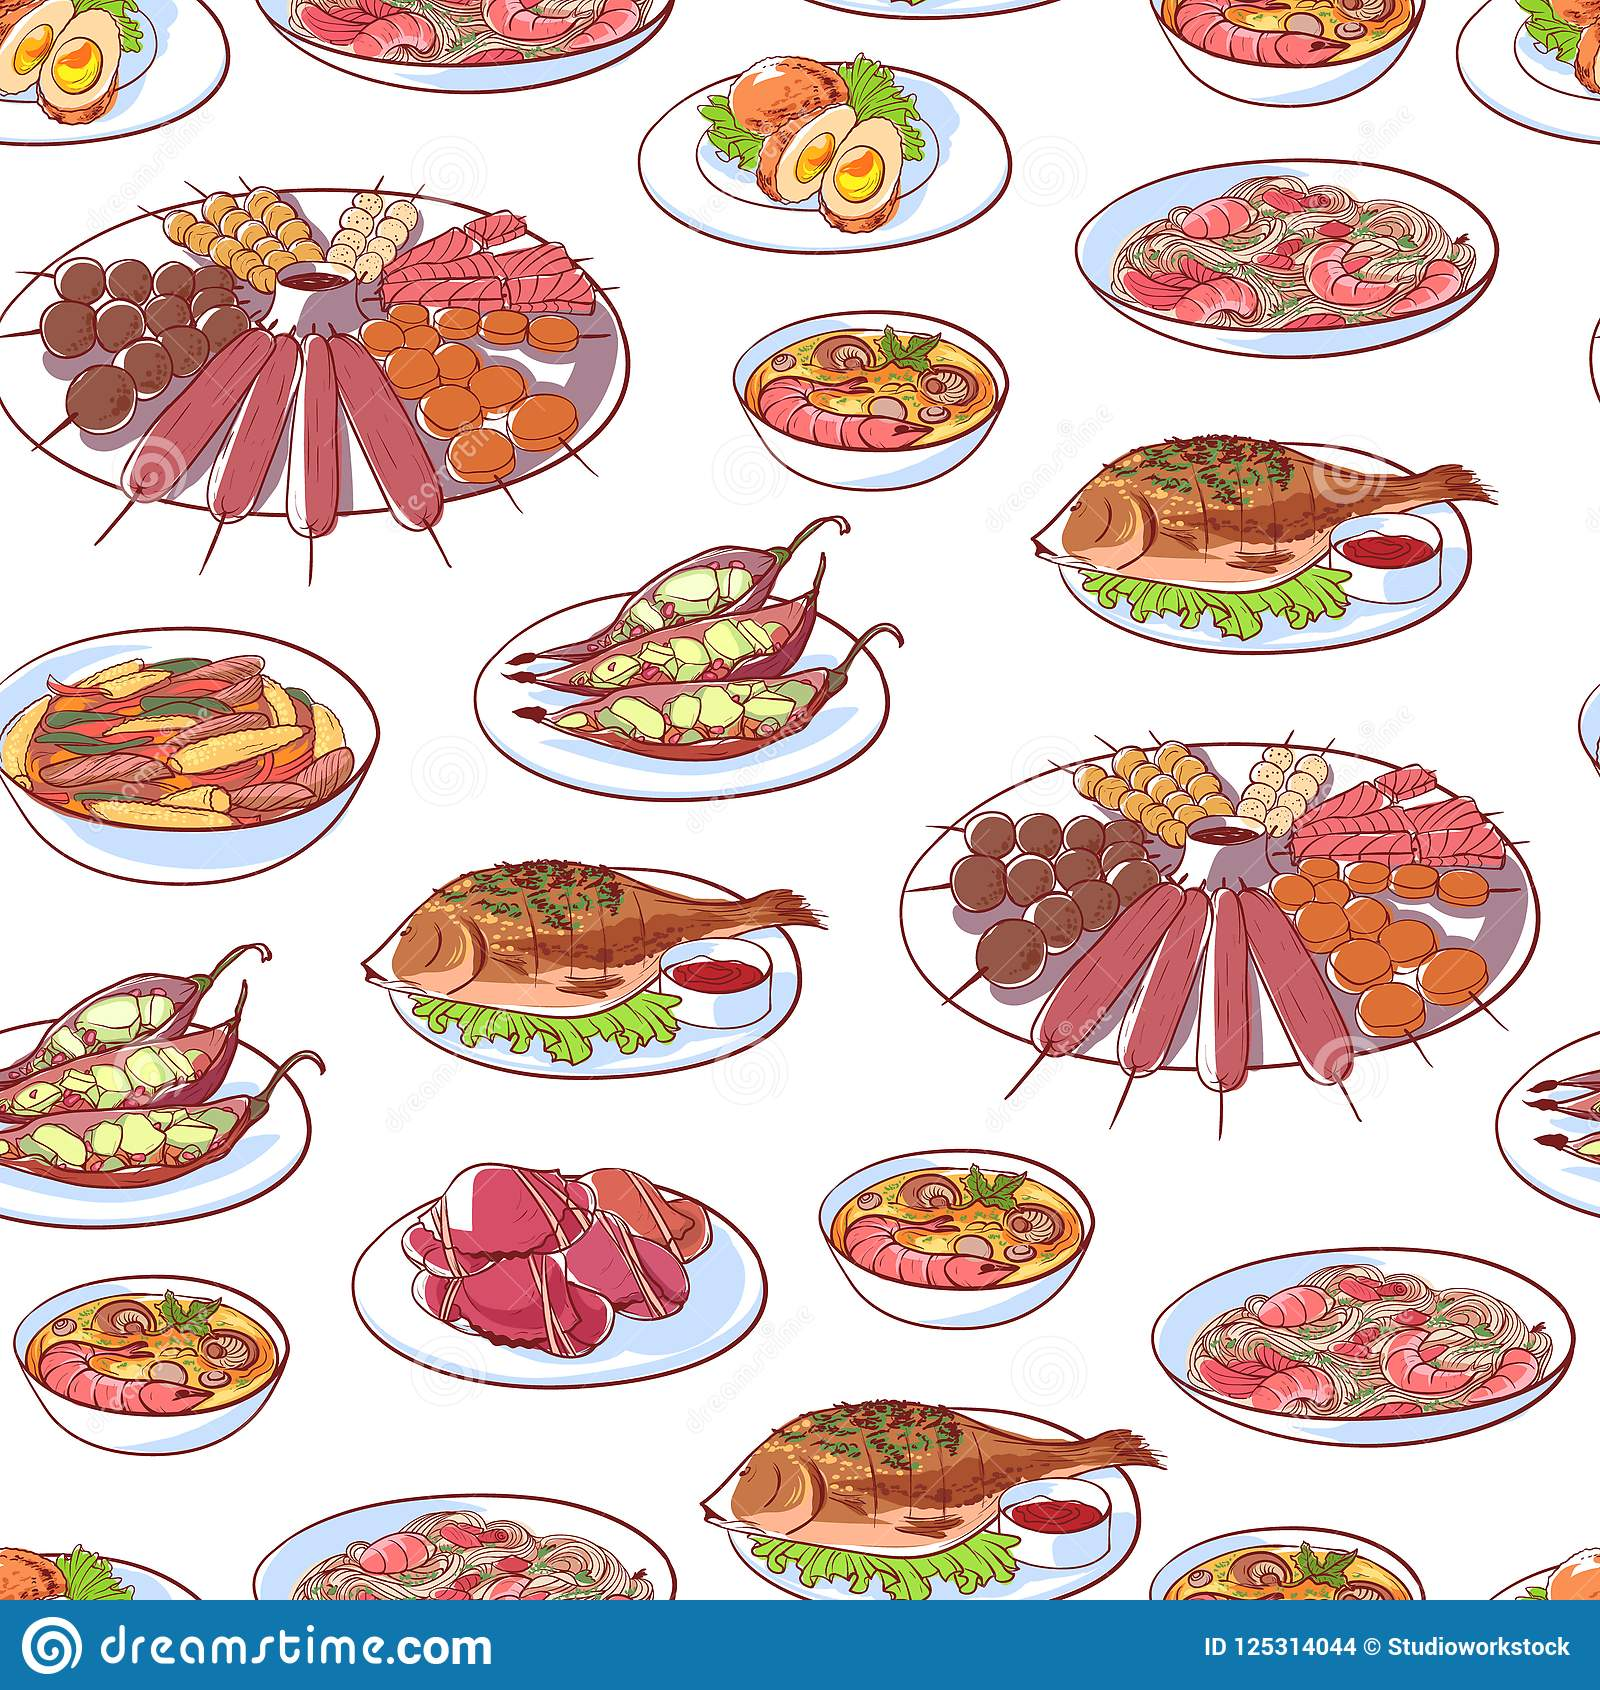 Cuisine Yam Thai Cuisine Dishes On White Background Stock Illustration